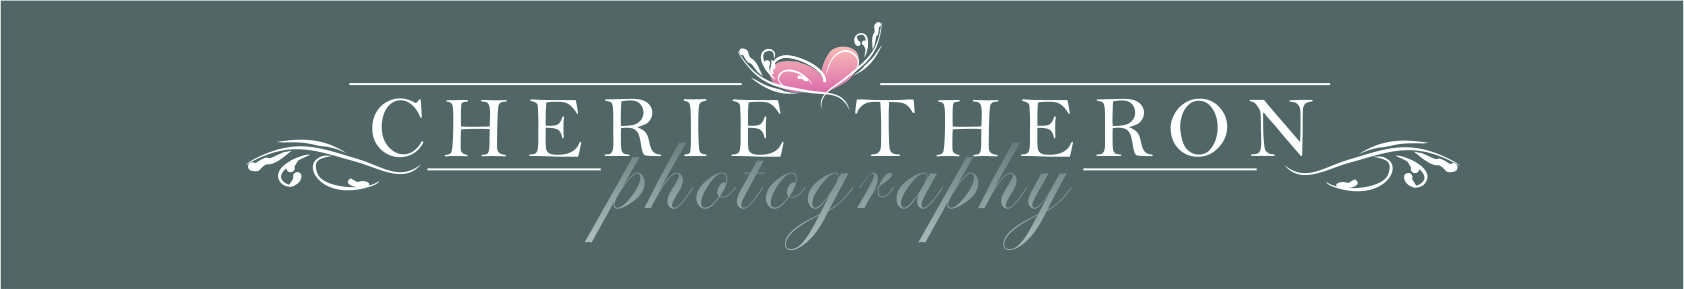 Cherie Theron Photography